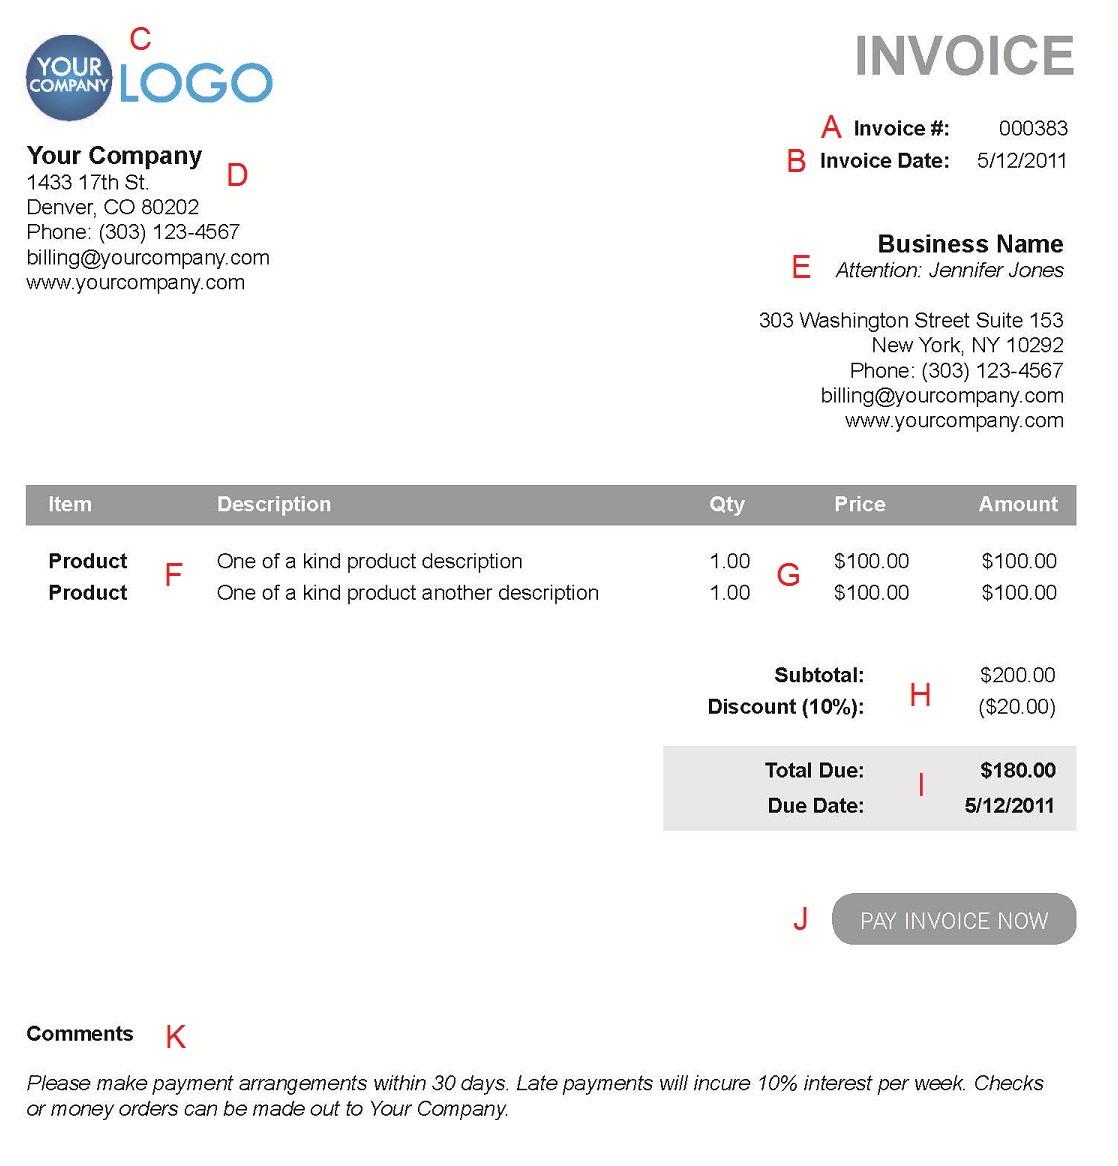 Shopdesignsus  Seductive The  Different Sections Of An Electronic Payment Invoice With Glamorous A  With Beauteous Invoice Cost Of Car Also Word Template For Invoice In Addition Paperless Invoice Processing And Invoice Pay As Well As Fake Invoices Additionally Sample Of Invoices From Paysimplecom With Shopdesignsus  Glamorous The  Different Sections Of An Electronic Payment Invoice With Beauteous A  And Seductive Invoice Cost Of Car Also Word Template For Invoice In Addition Paperless Invoice Processing From Paysimplecom